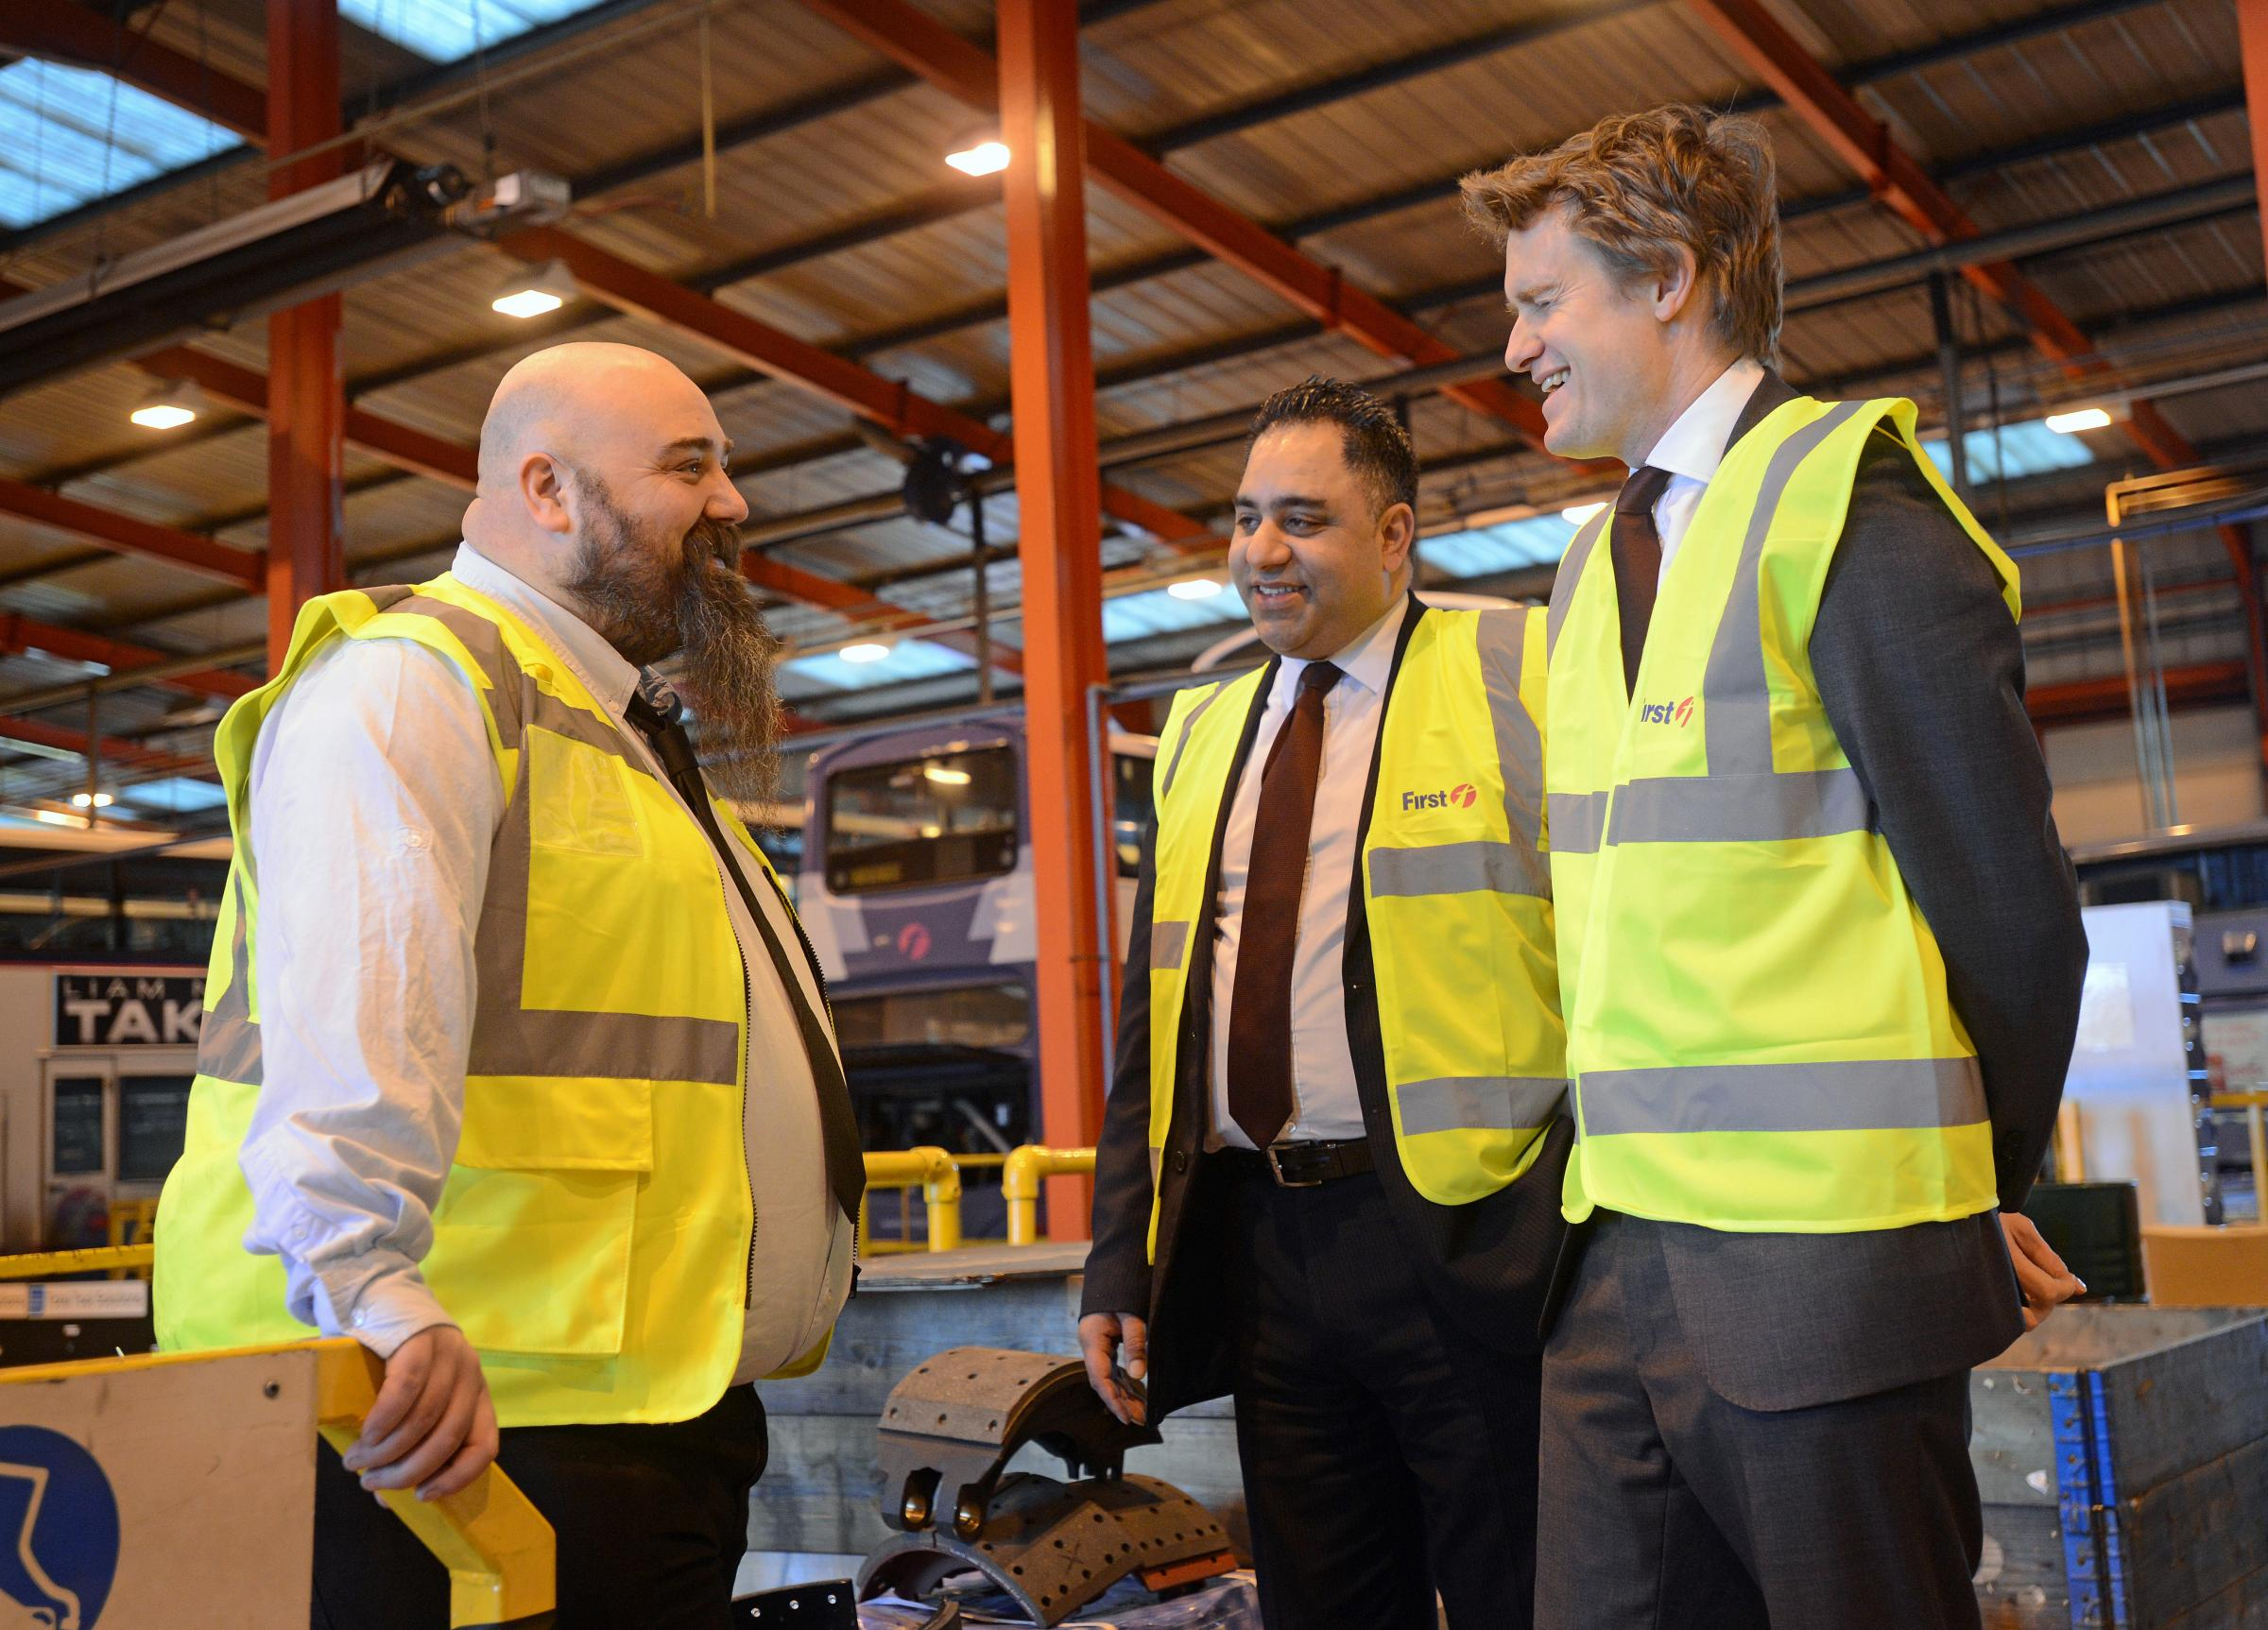 Manager Stuart Eyre, with Councillor Imran Hussain and shadow education secretary Tristram Hunt